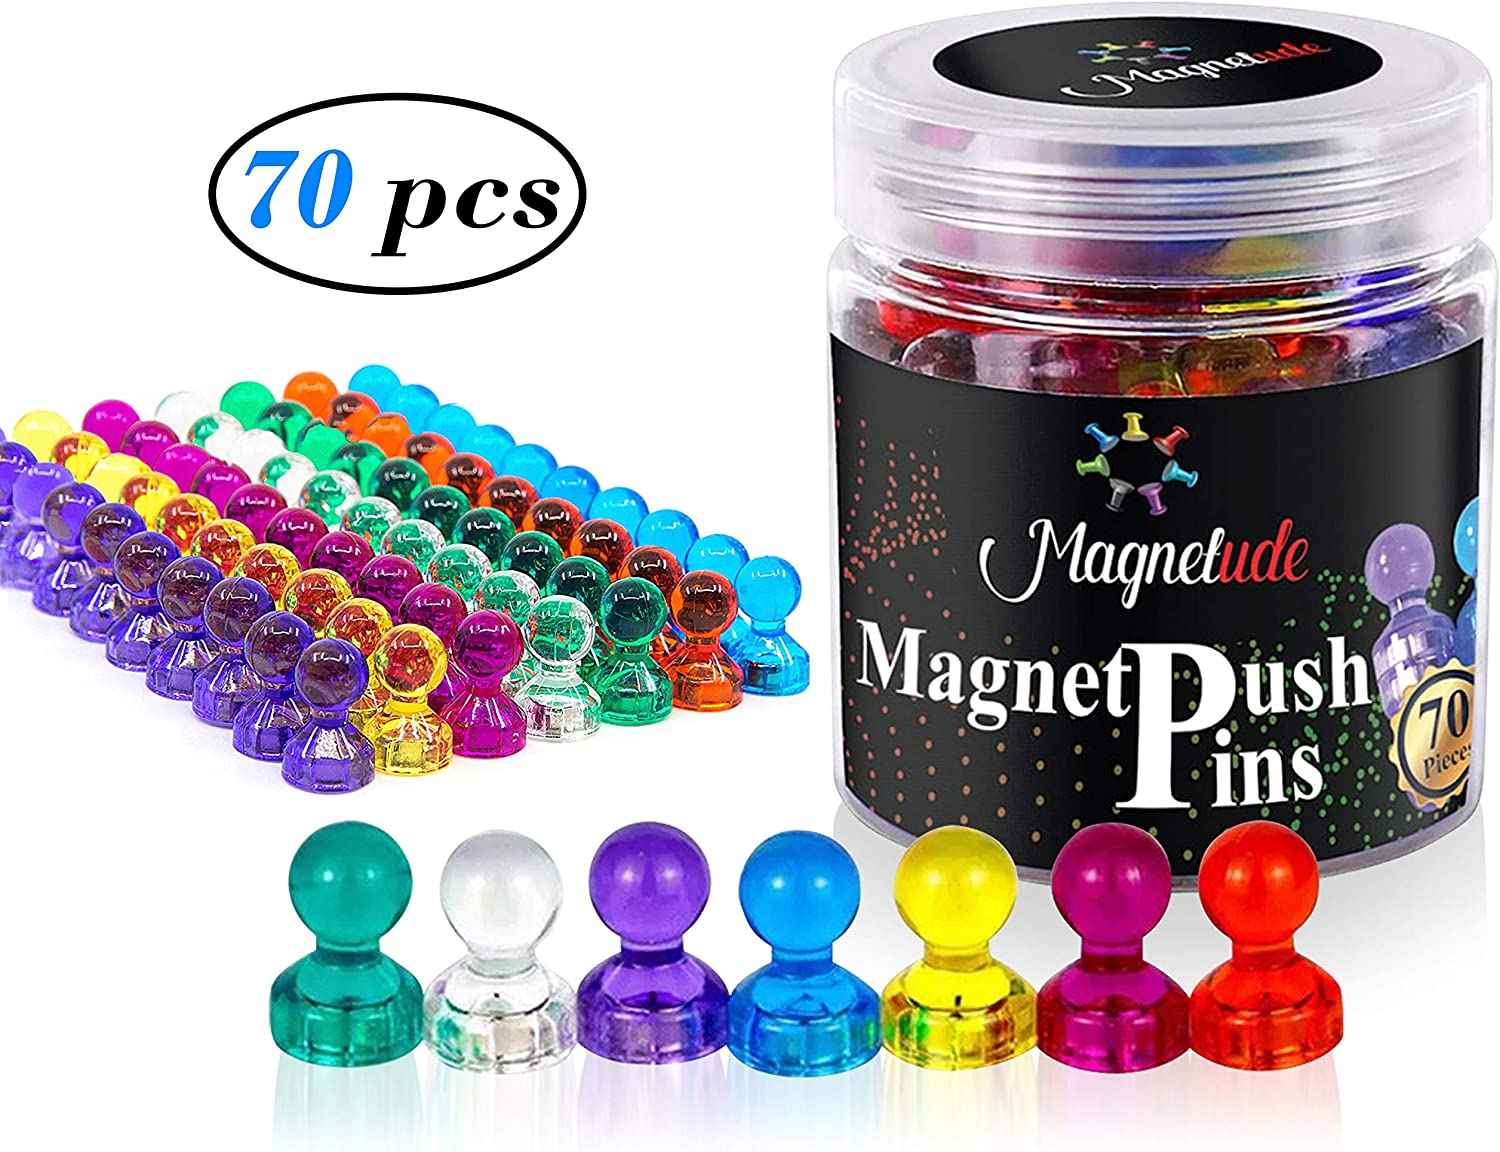 MAGNETUDE Magnetic Push Pins - 70 Pack Strong Magnets for Refrigerator Dry Erase Board and Whiteboard, Push Pins Magnet for Home, School, Classroom and Office, Acrylic Magnetic Push Pins